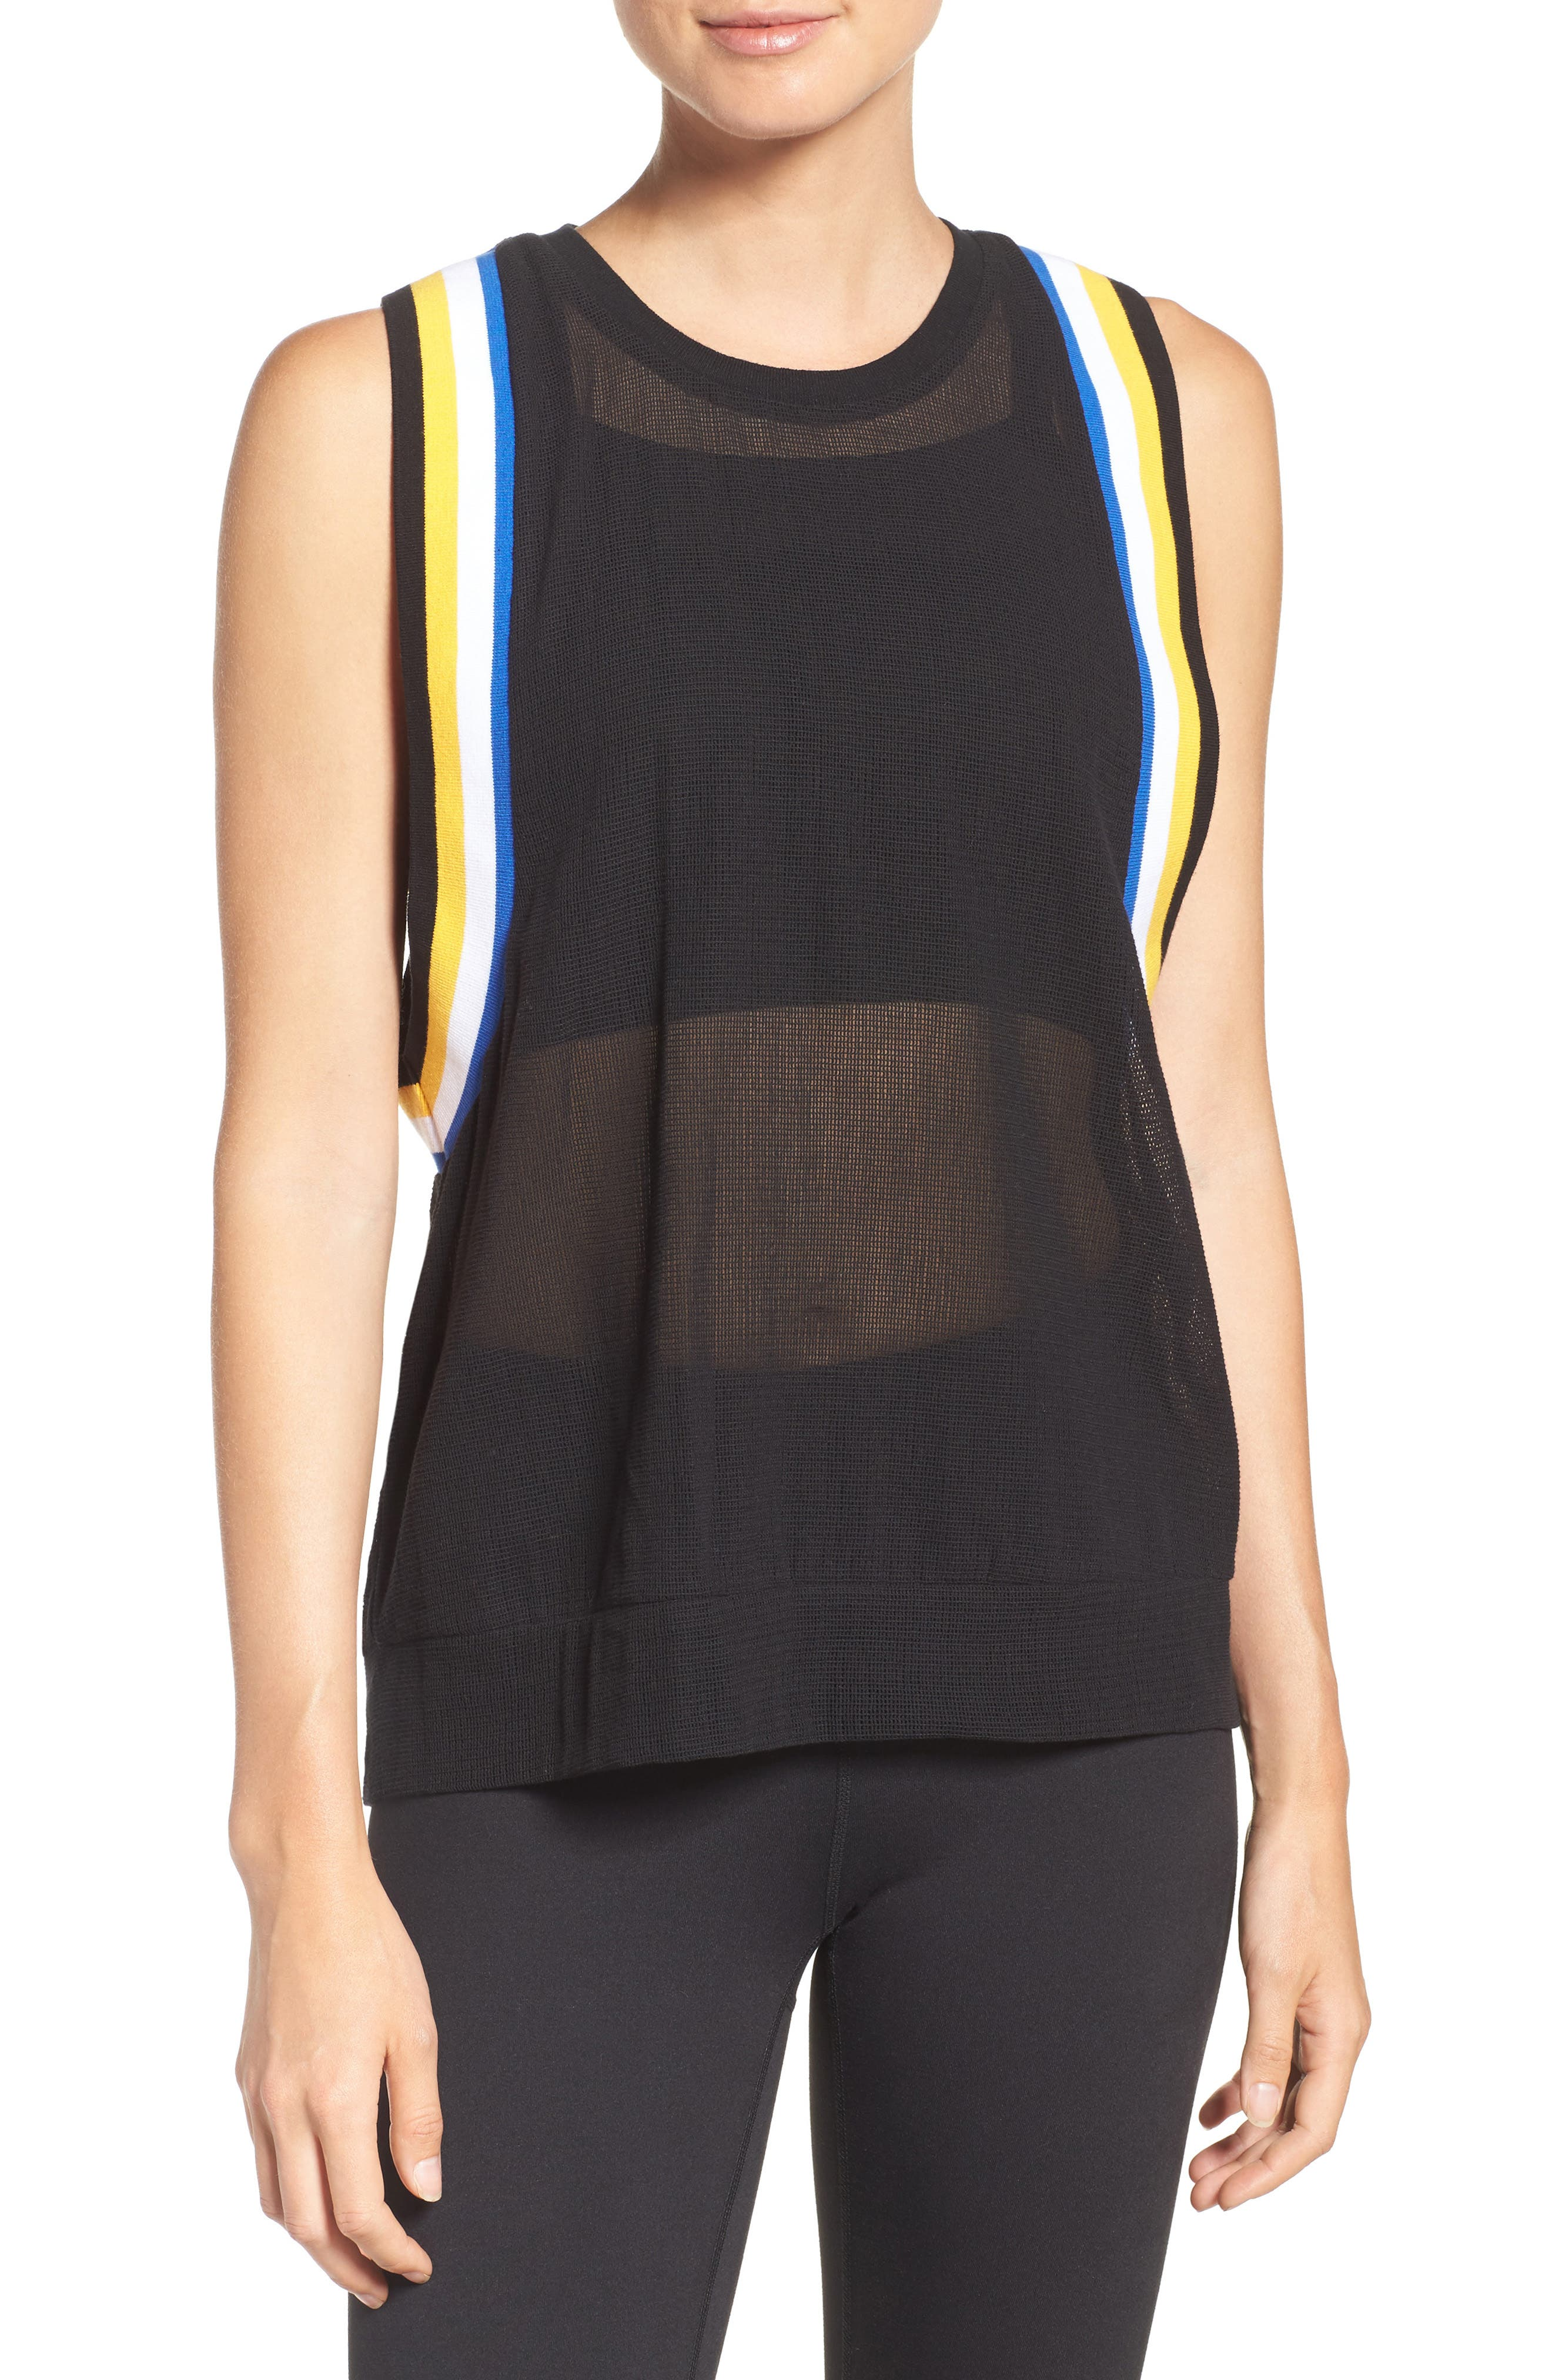 P.E. Nation Fast Ball Mesh Tank,                         Main,                         color, Black/ Multi